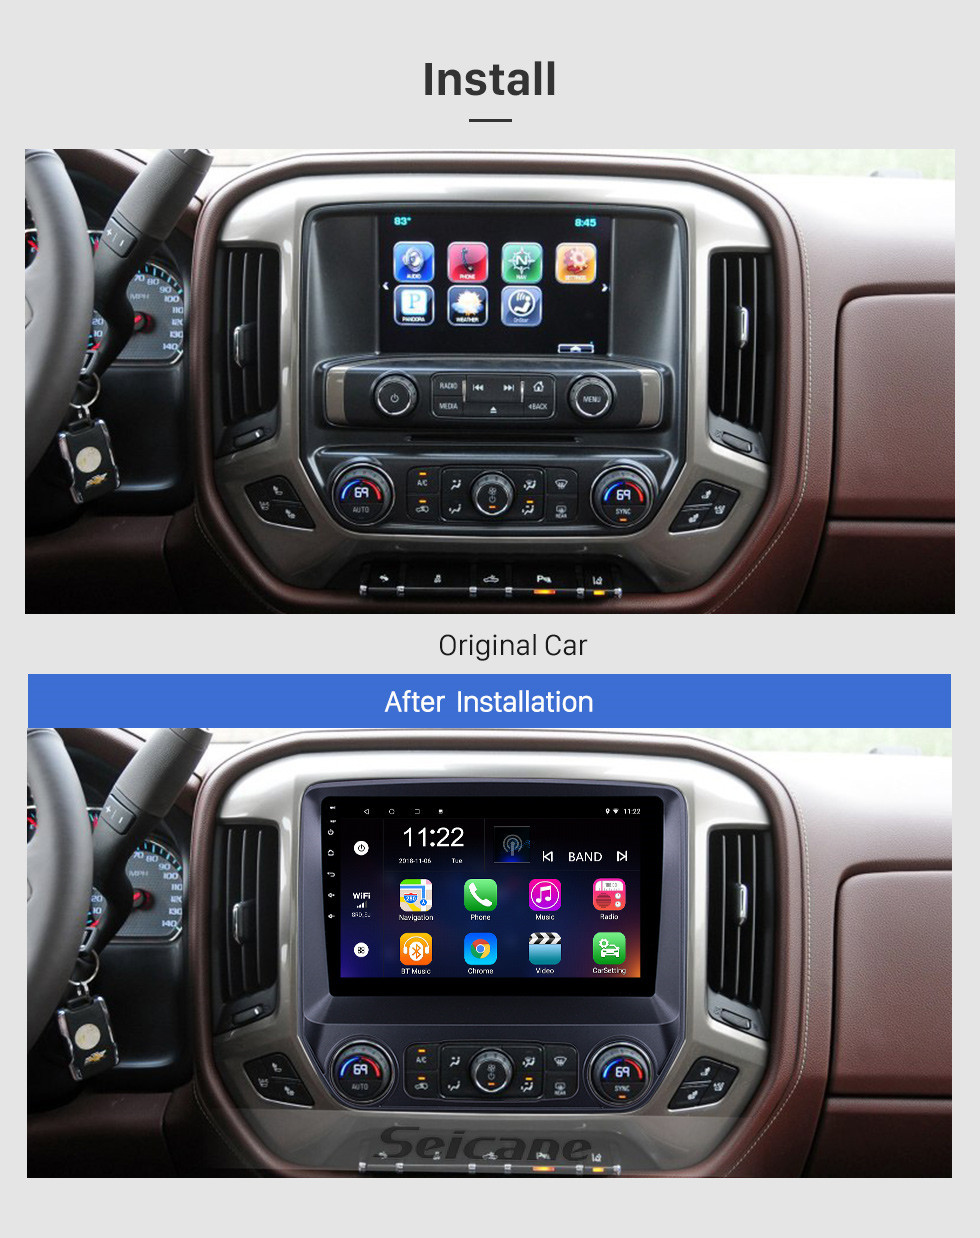 Seicane HD Touchscreen 10.1 inch Android 10.0 GPS Navigation Radio for 2014-2018 chevy Chevrolet Colorado with Bluetooth USB WIFI AUX support DVR Carplay SWC 3G